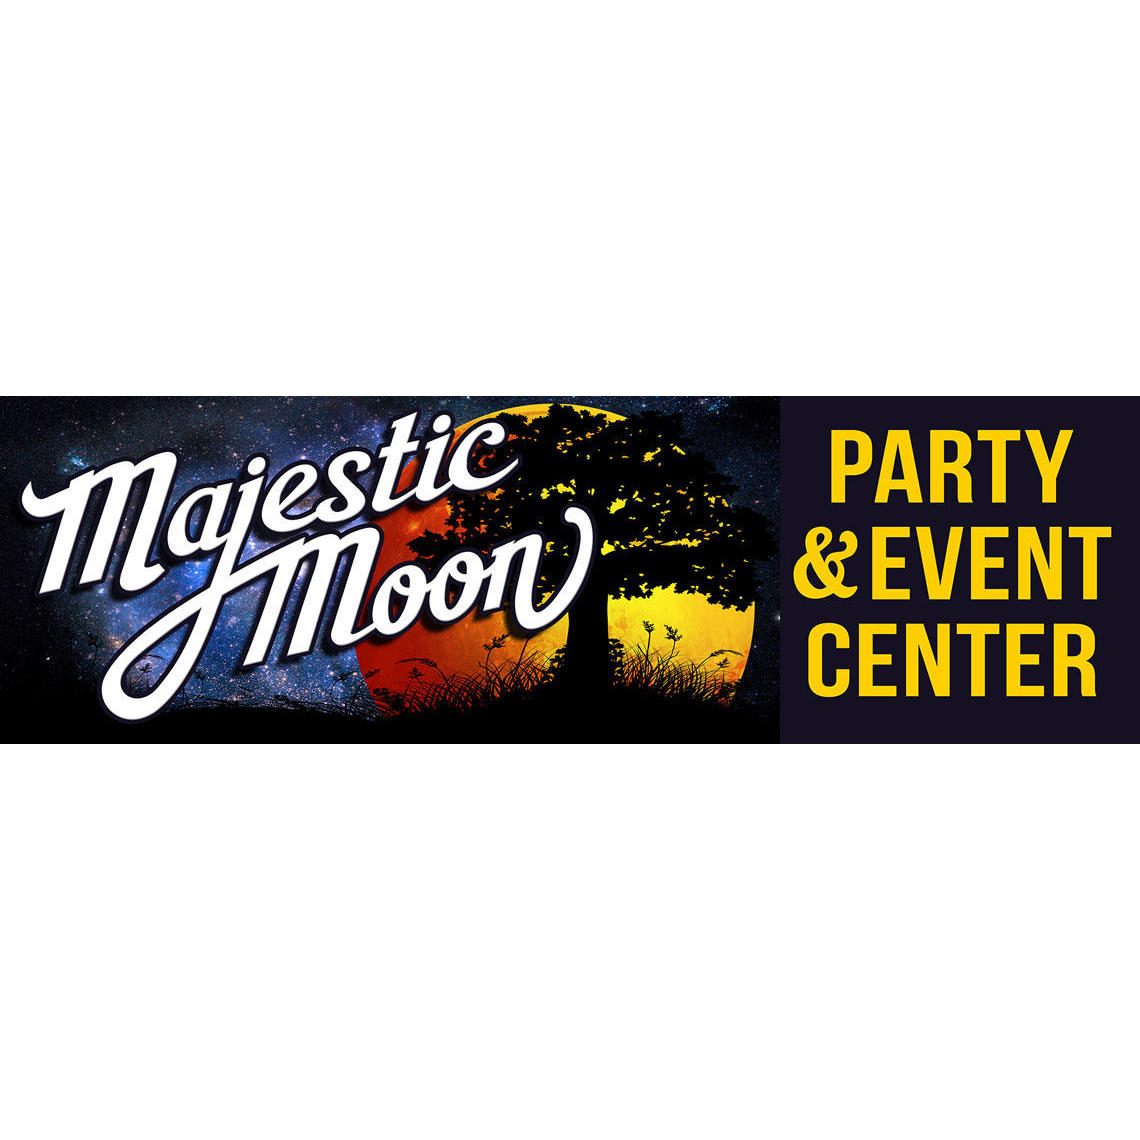 Majestic Moon Party & Event Center